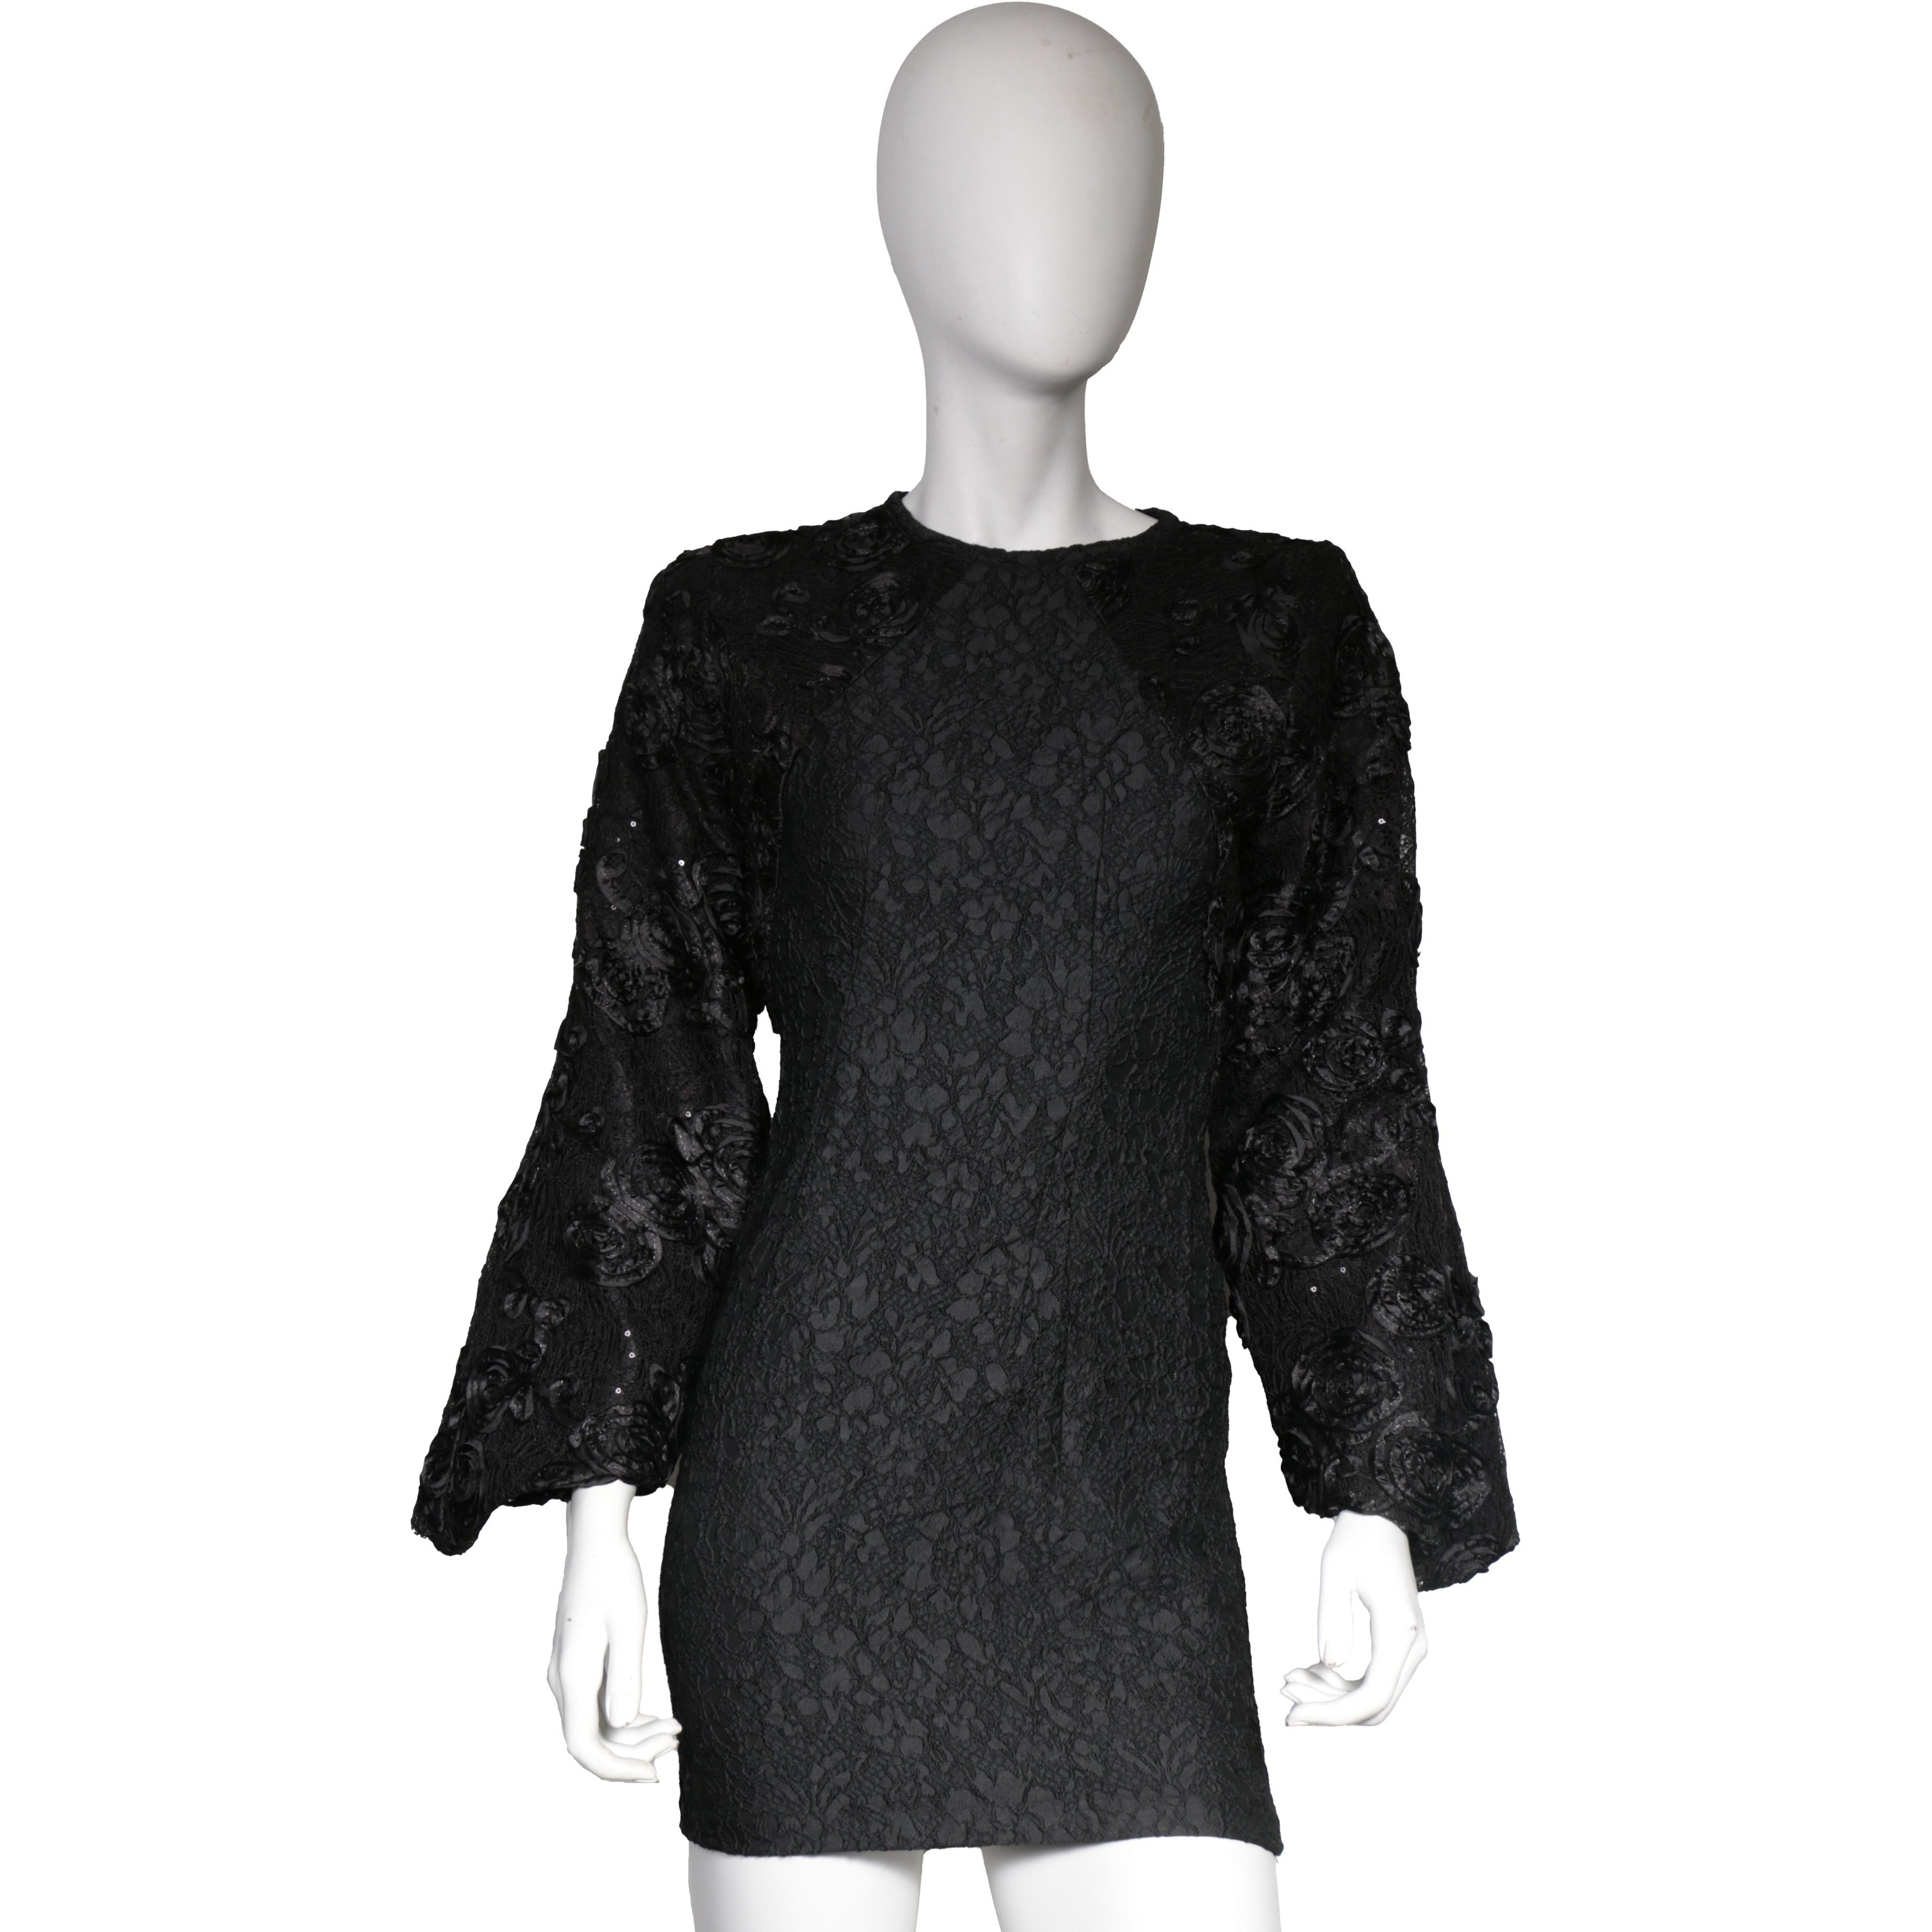 Black Structured lace dress